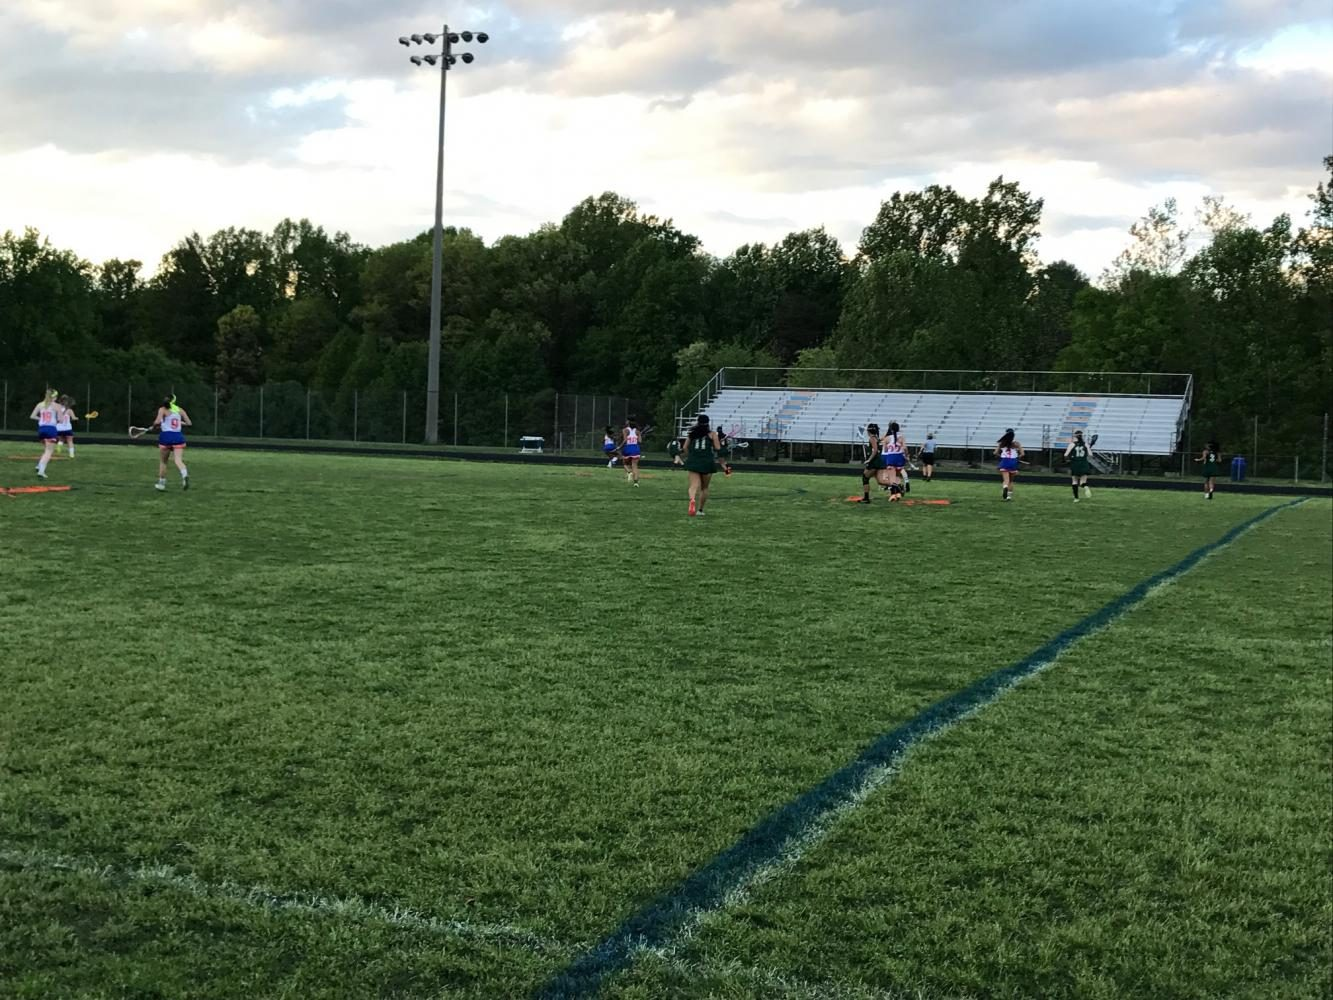 Girl%27s+lacrosse+in+the+middle+of+a+game.